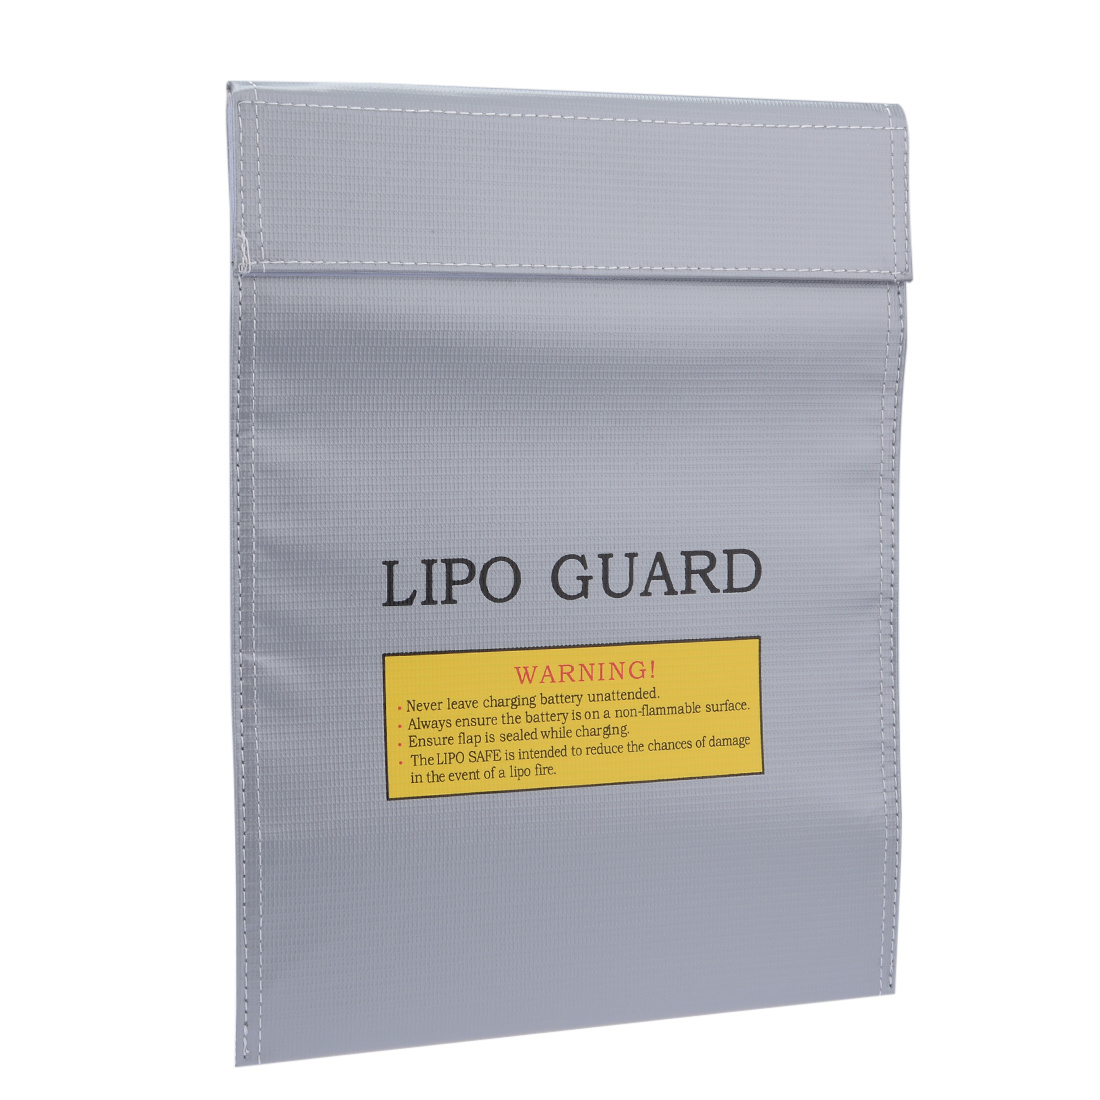 Lipo Battery Fireproof Explosionproof Bag Storage Guard Safe Charging Holder 23cm x 30cm Silver Tone